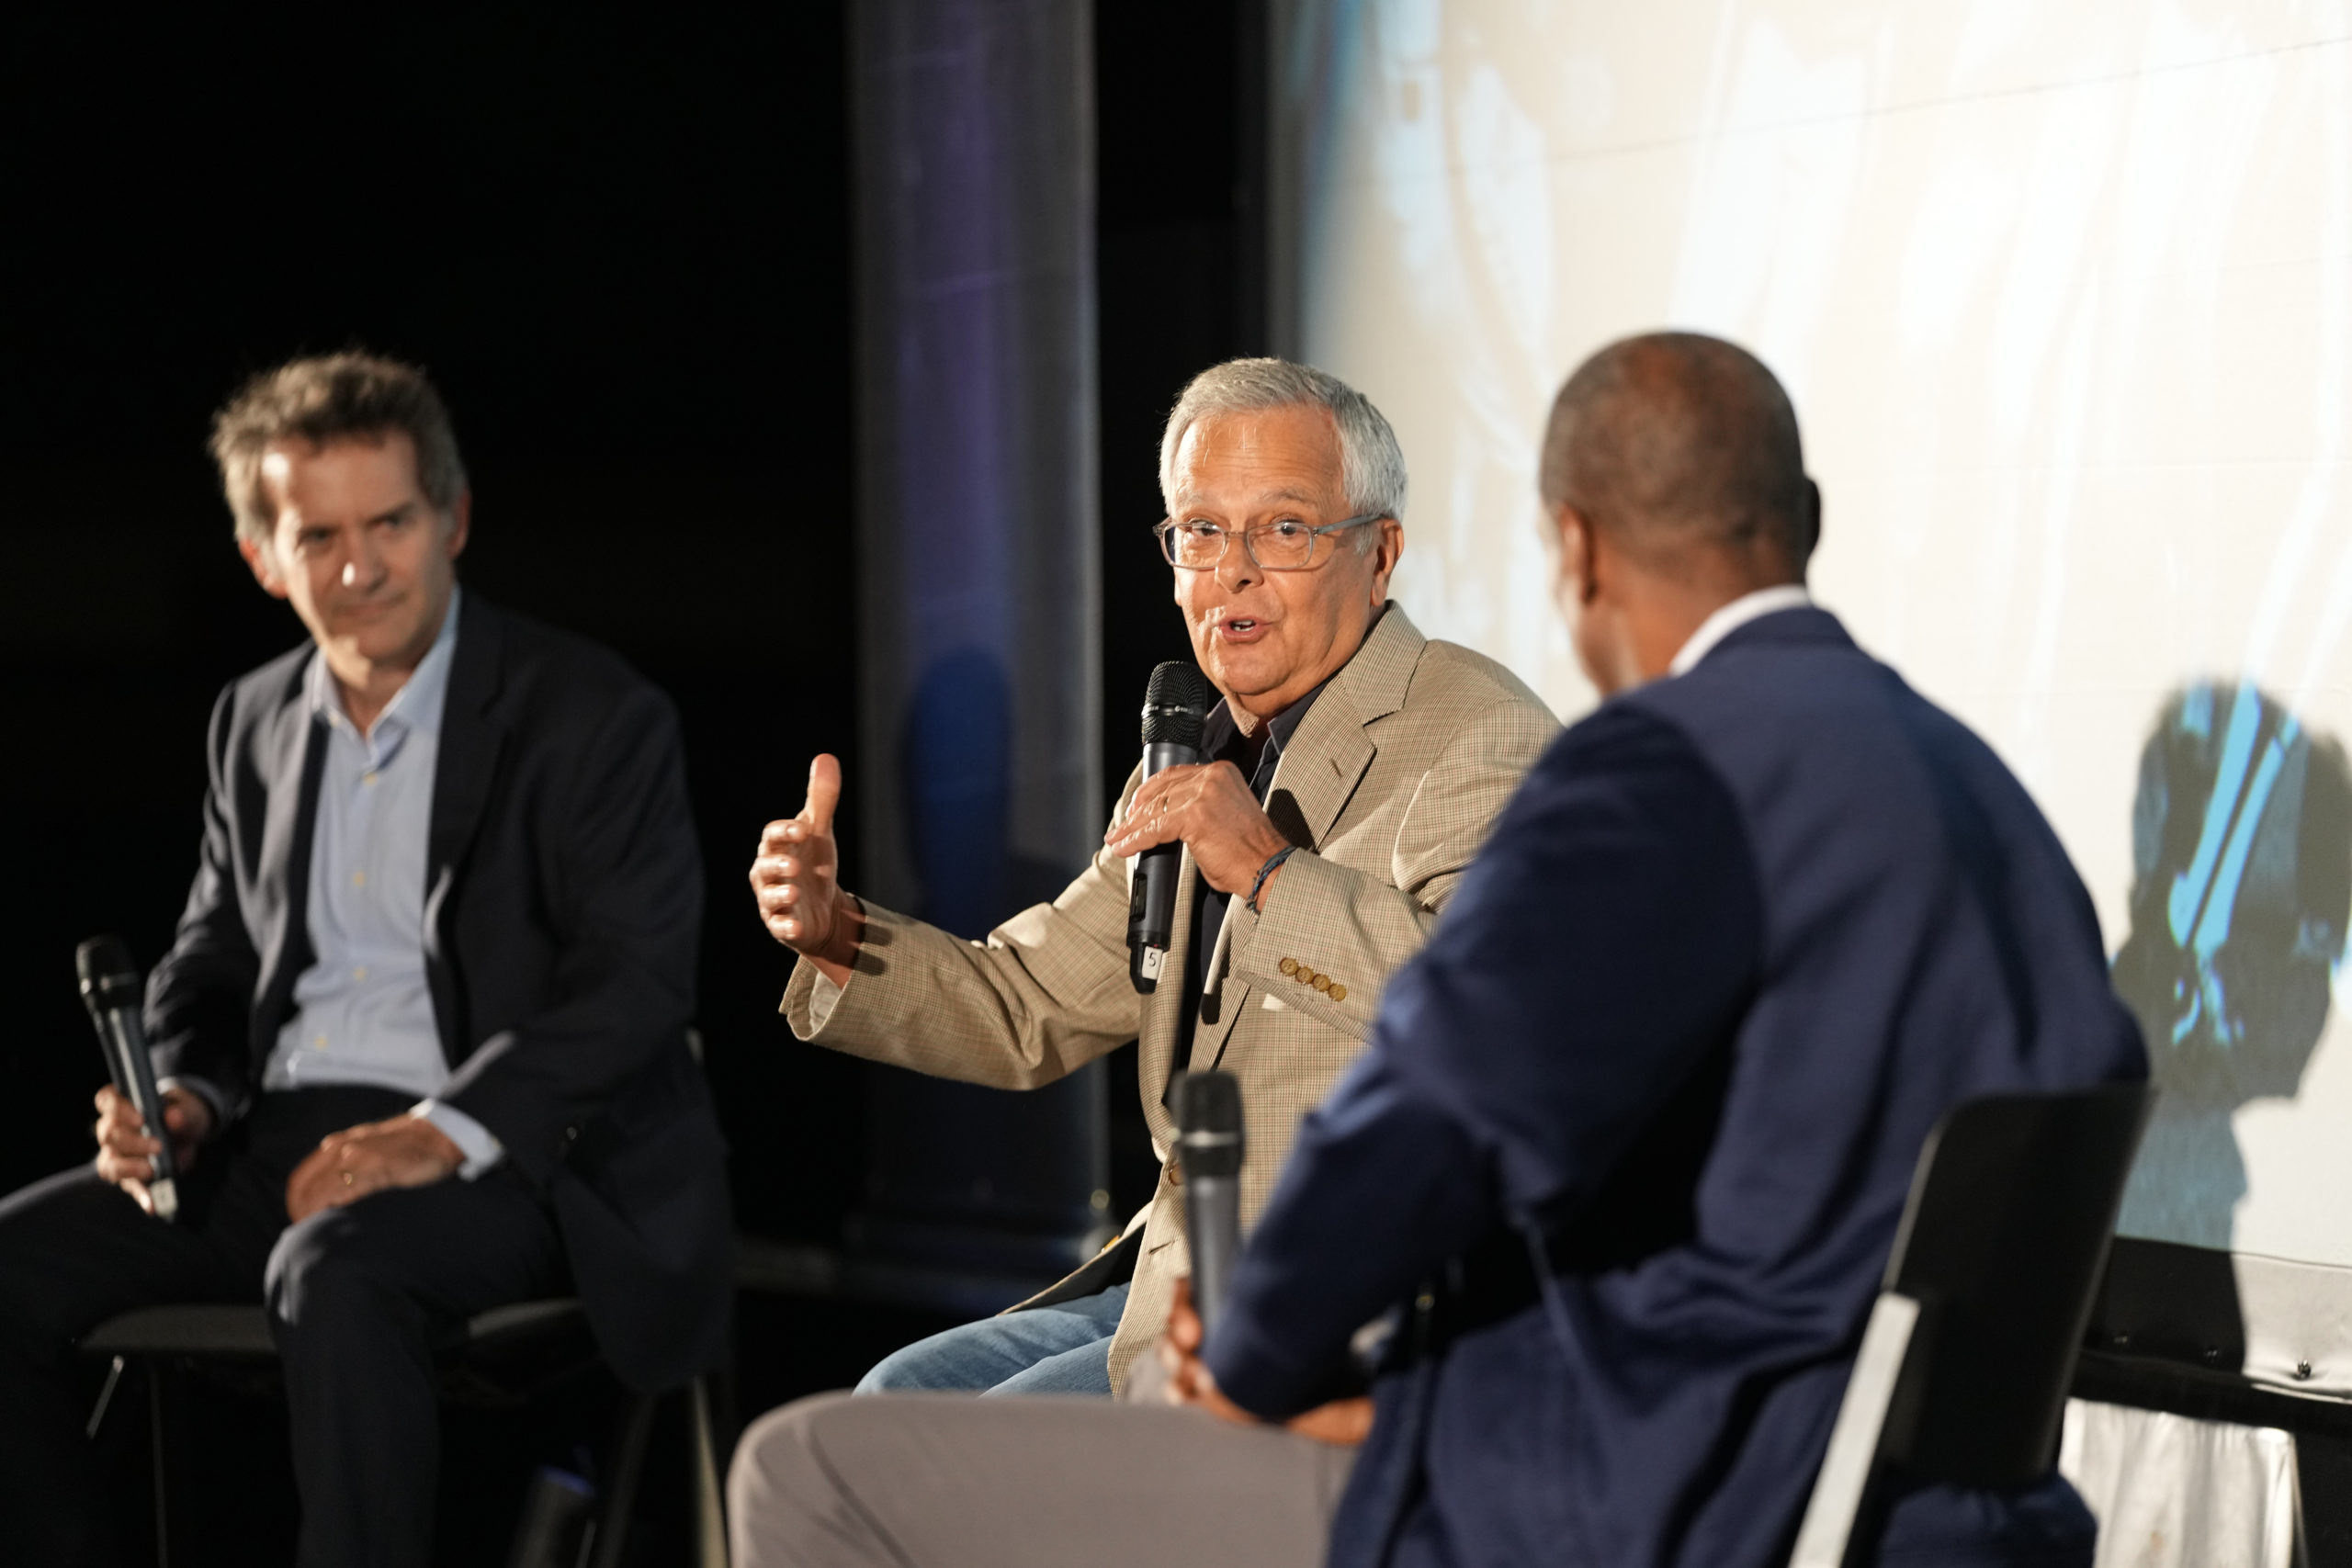 Mike Lupica leads a panel discussion with Dwight Gooden and Nick Davis.